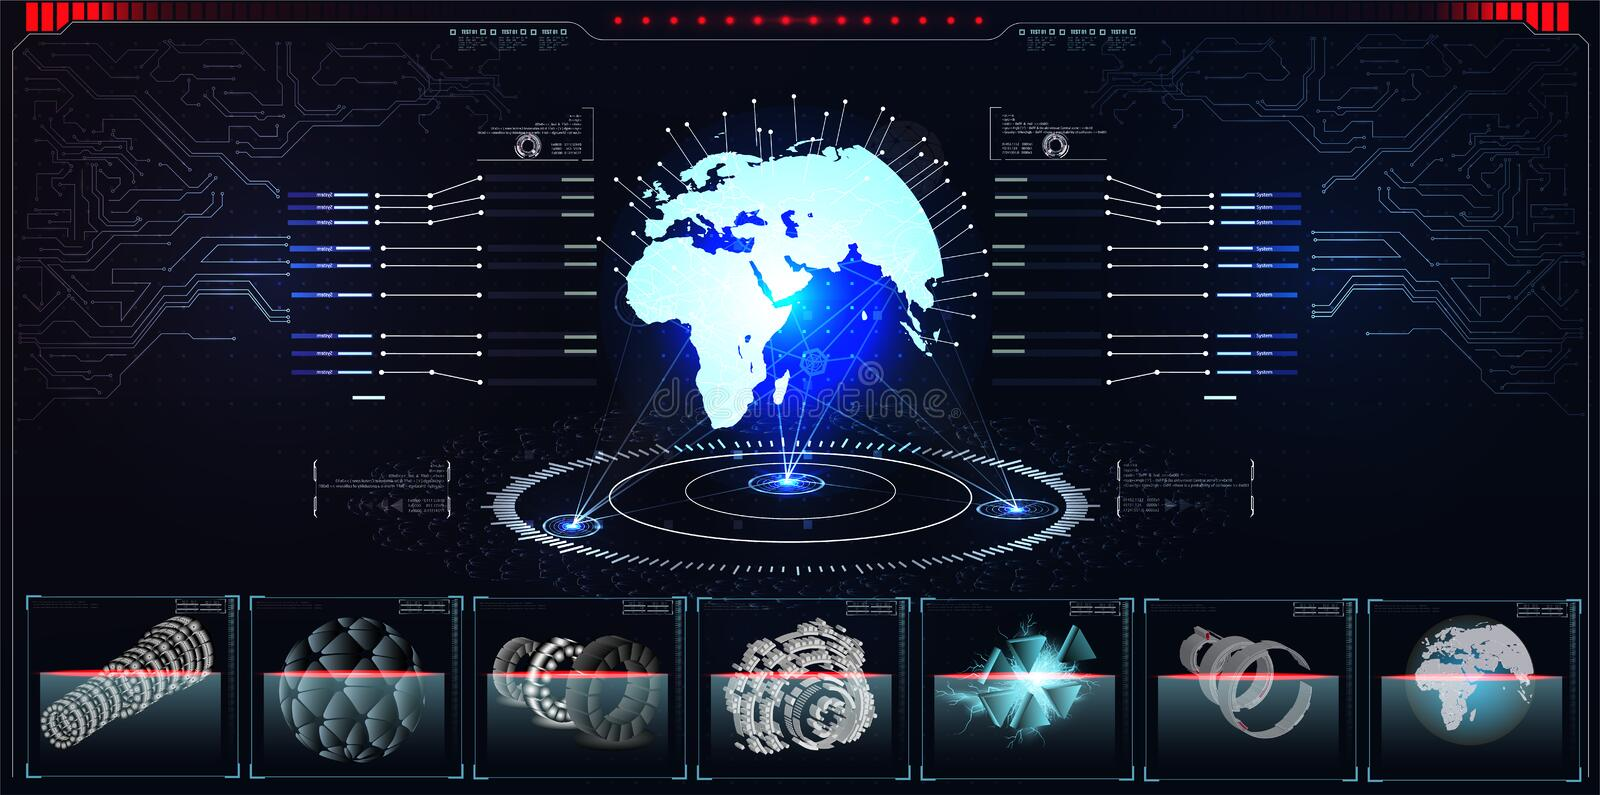 Planet hologram with futuristic hud design elements with bar and circle graph. Infographic or technology interface for information. Visualization royalty free illustration